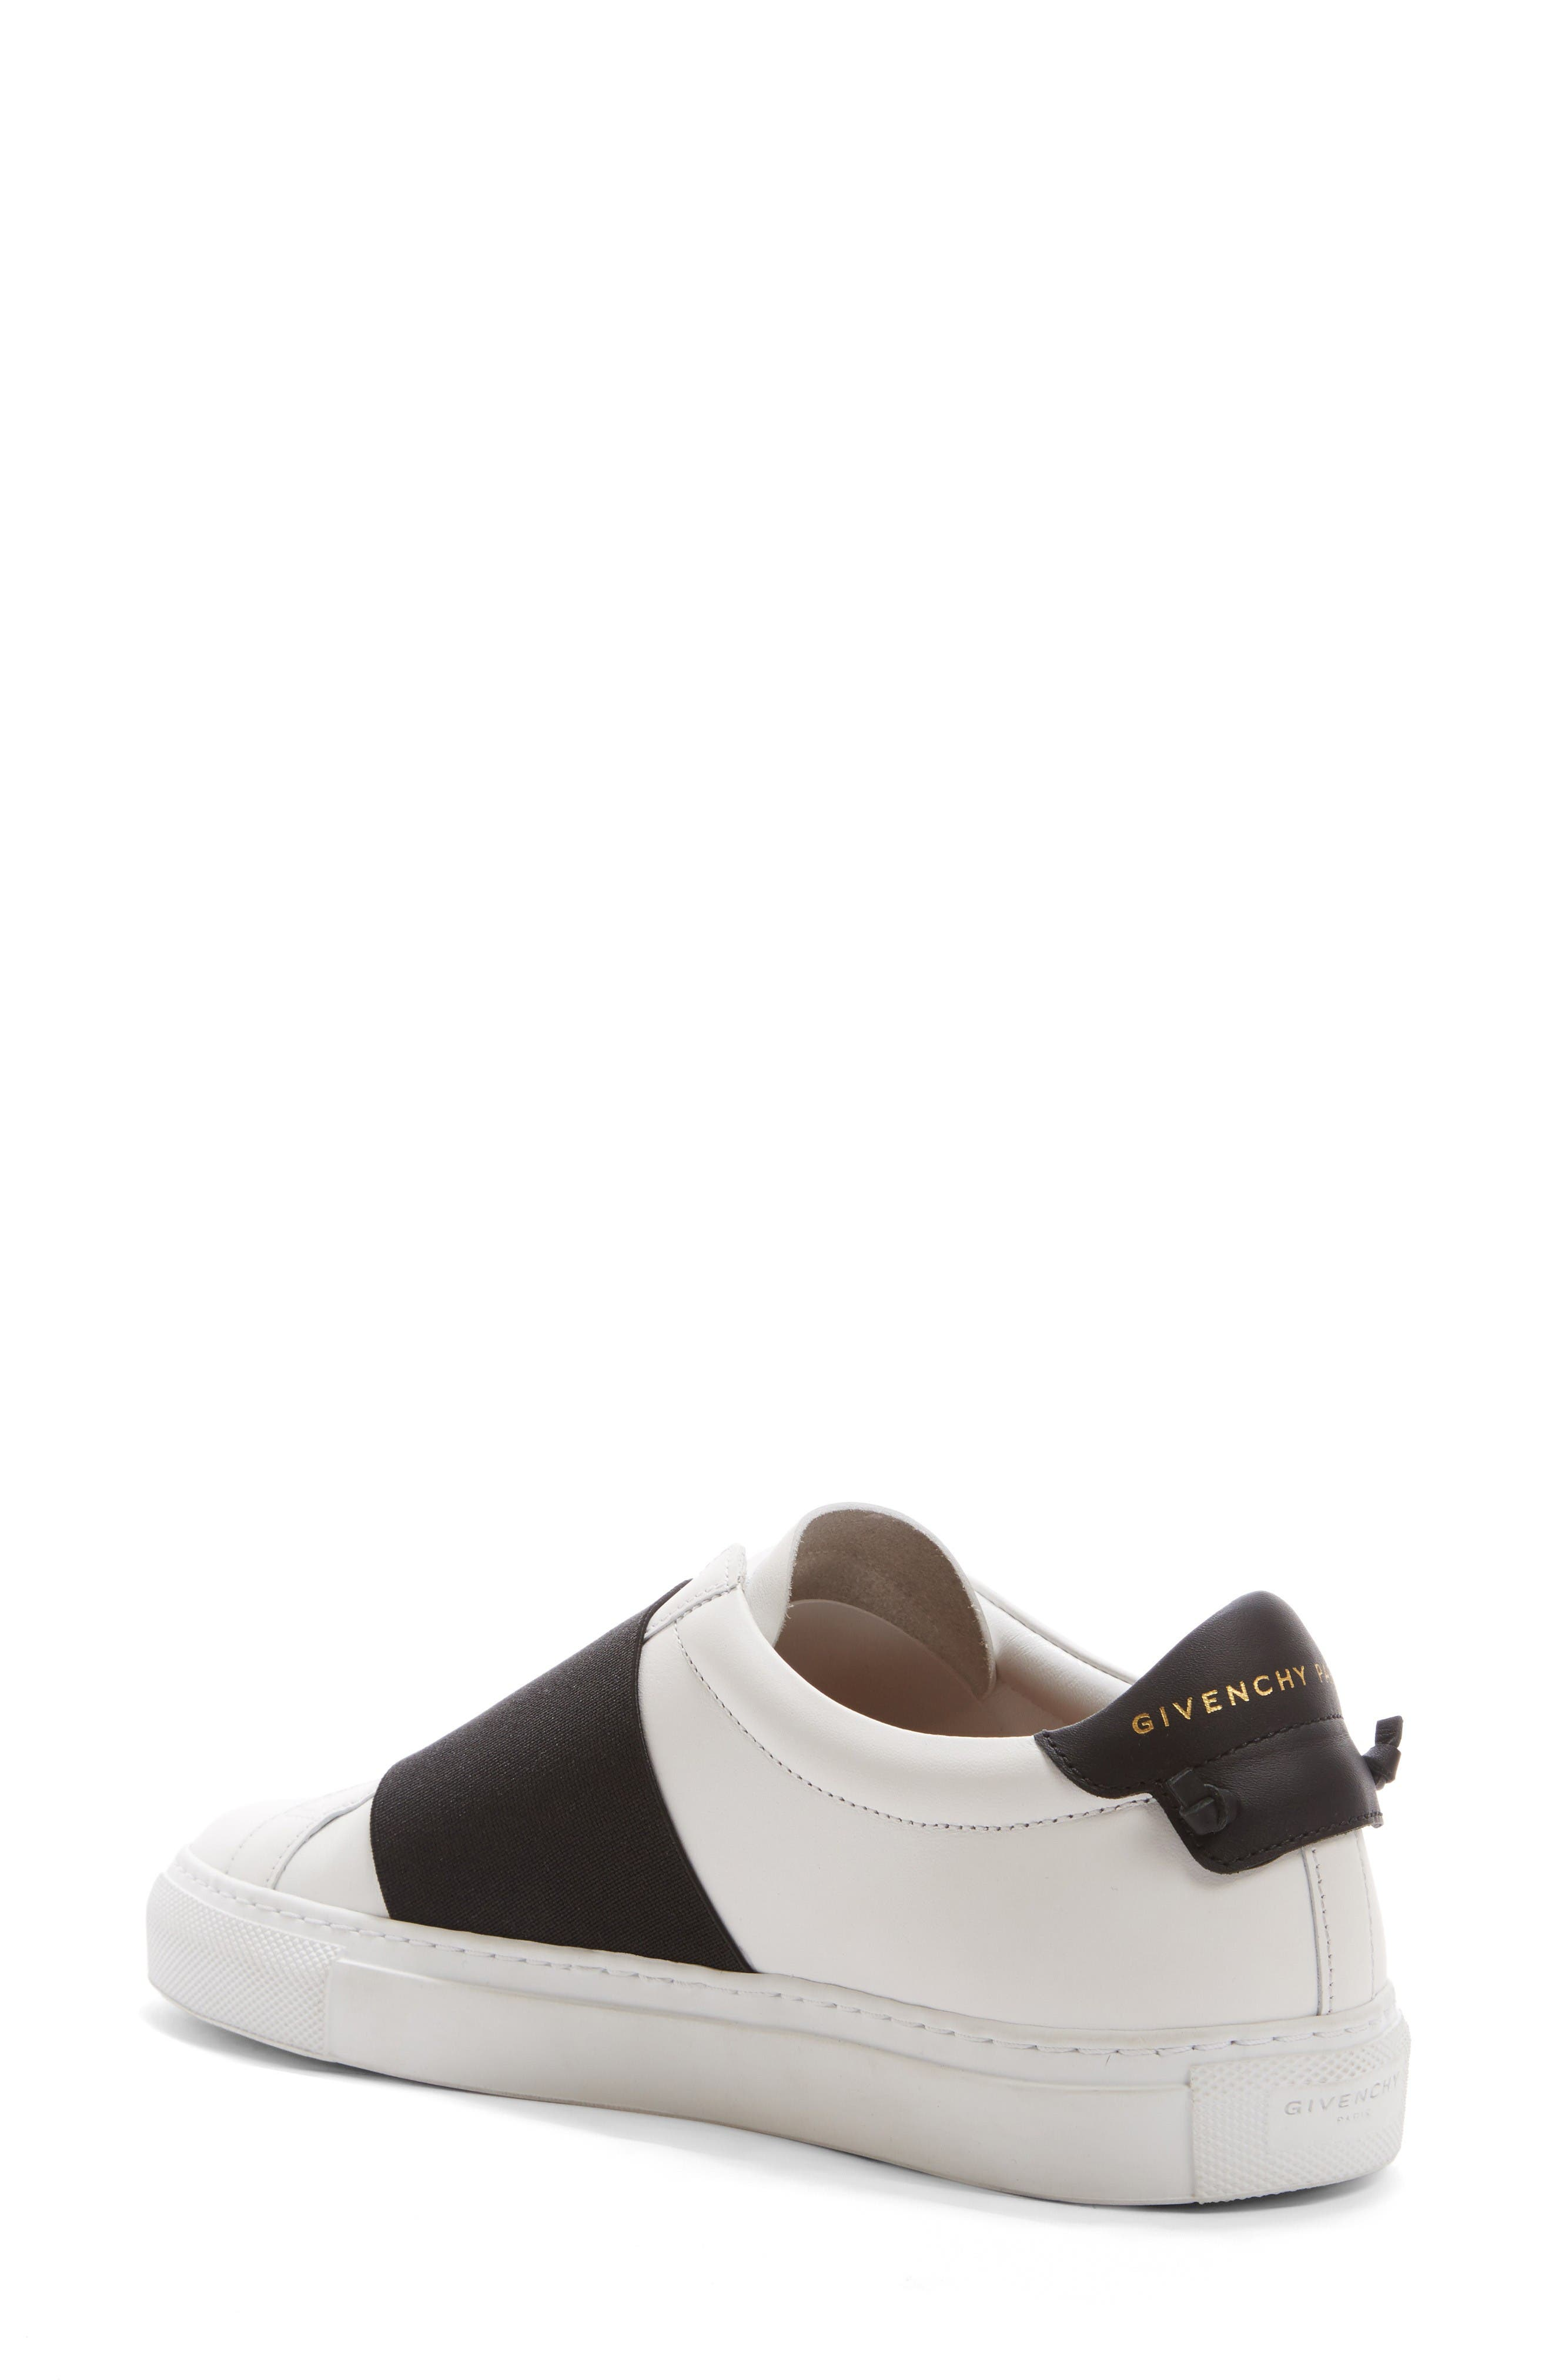 Givenchy Shoes for Women   Nordstrom f29f465df2